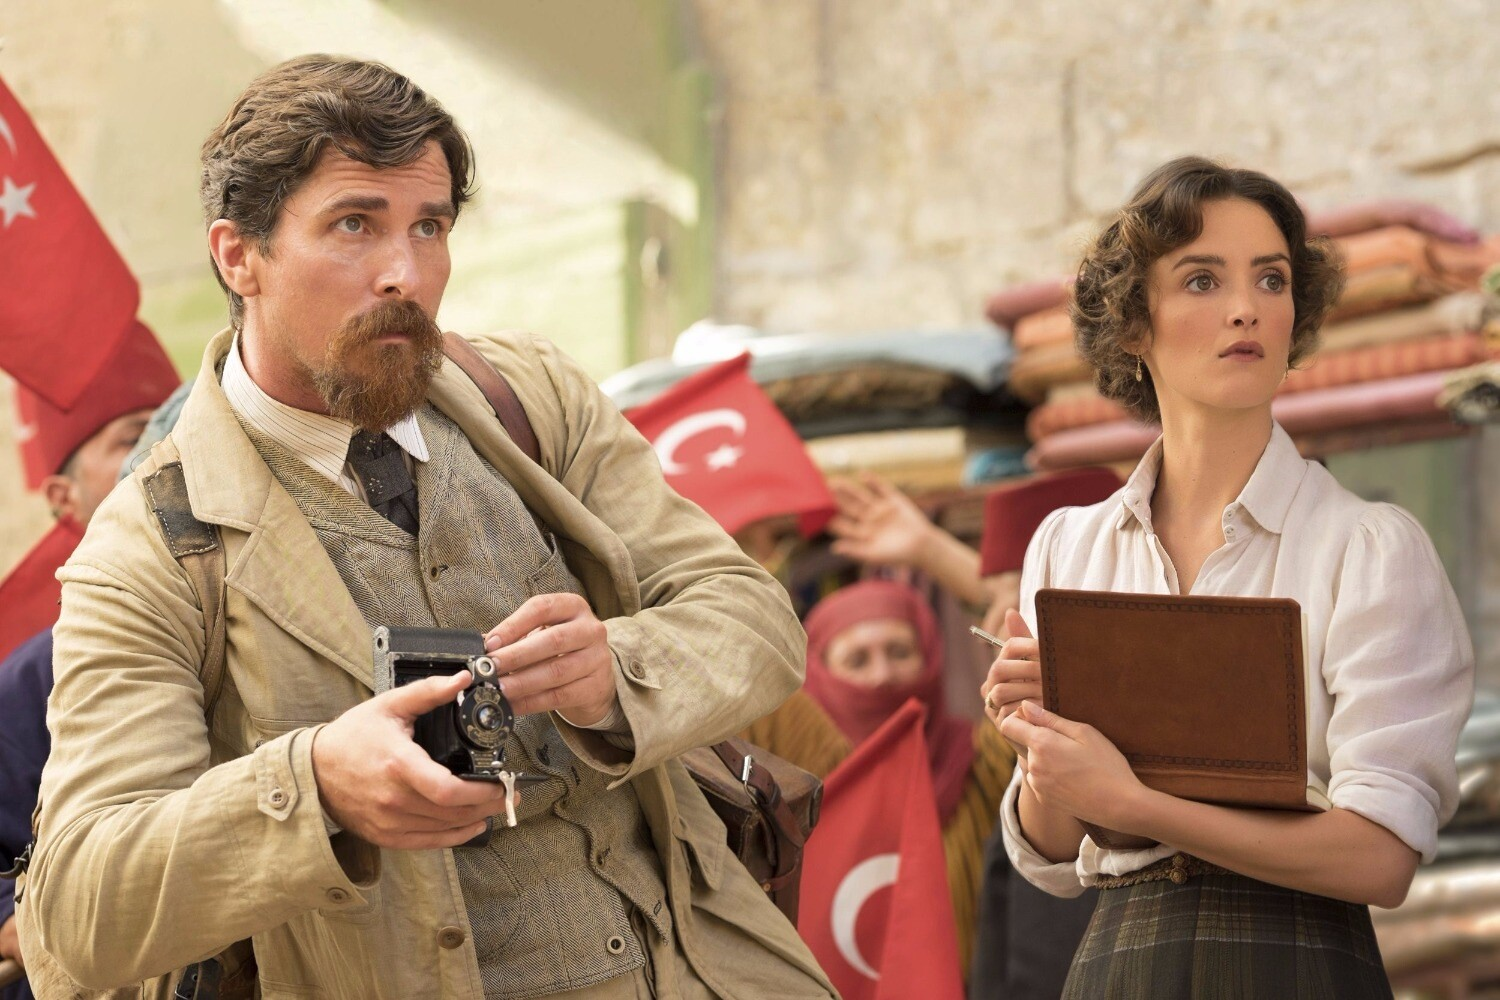 movie review on the promise essay The promise premiered at the toronto international film festival last september, but before the audience even left the theater, reviewers suspected to be turkish government- sponsored trolls had submitted ca 4,000 negative ratings.